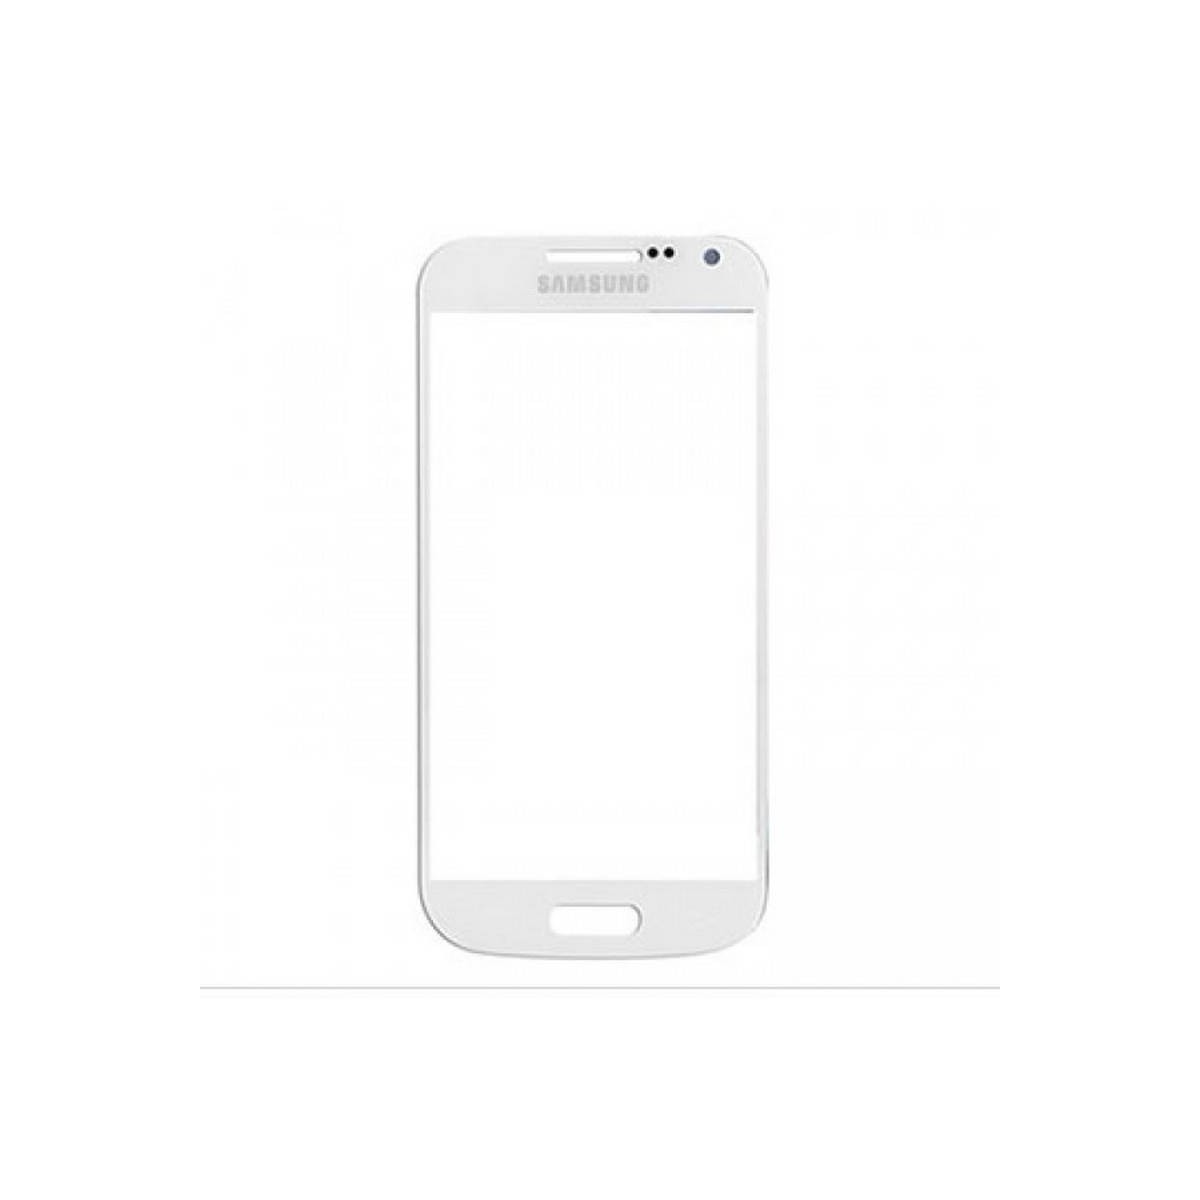 CRISTAL SAMSUNG GALAXY S4 MINI I9190 BLANCO